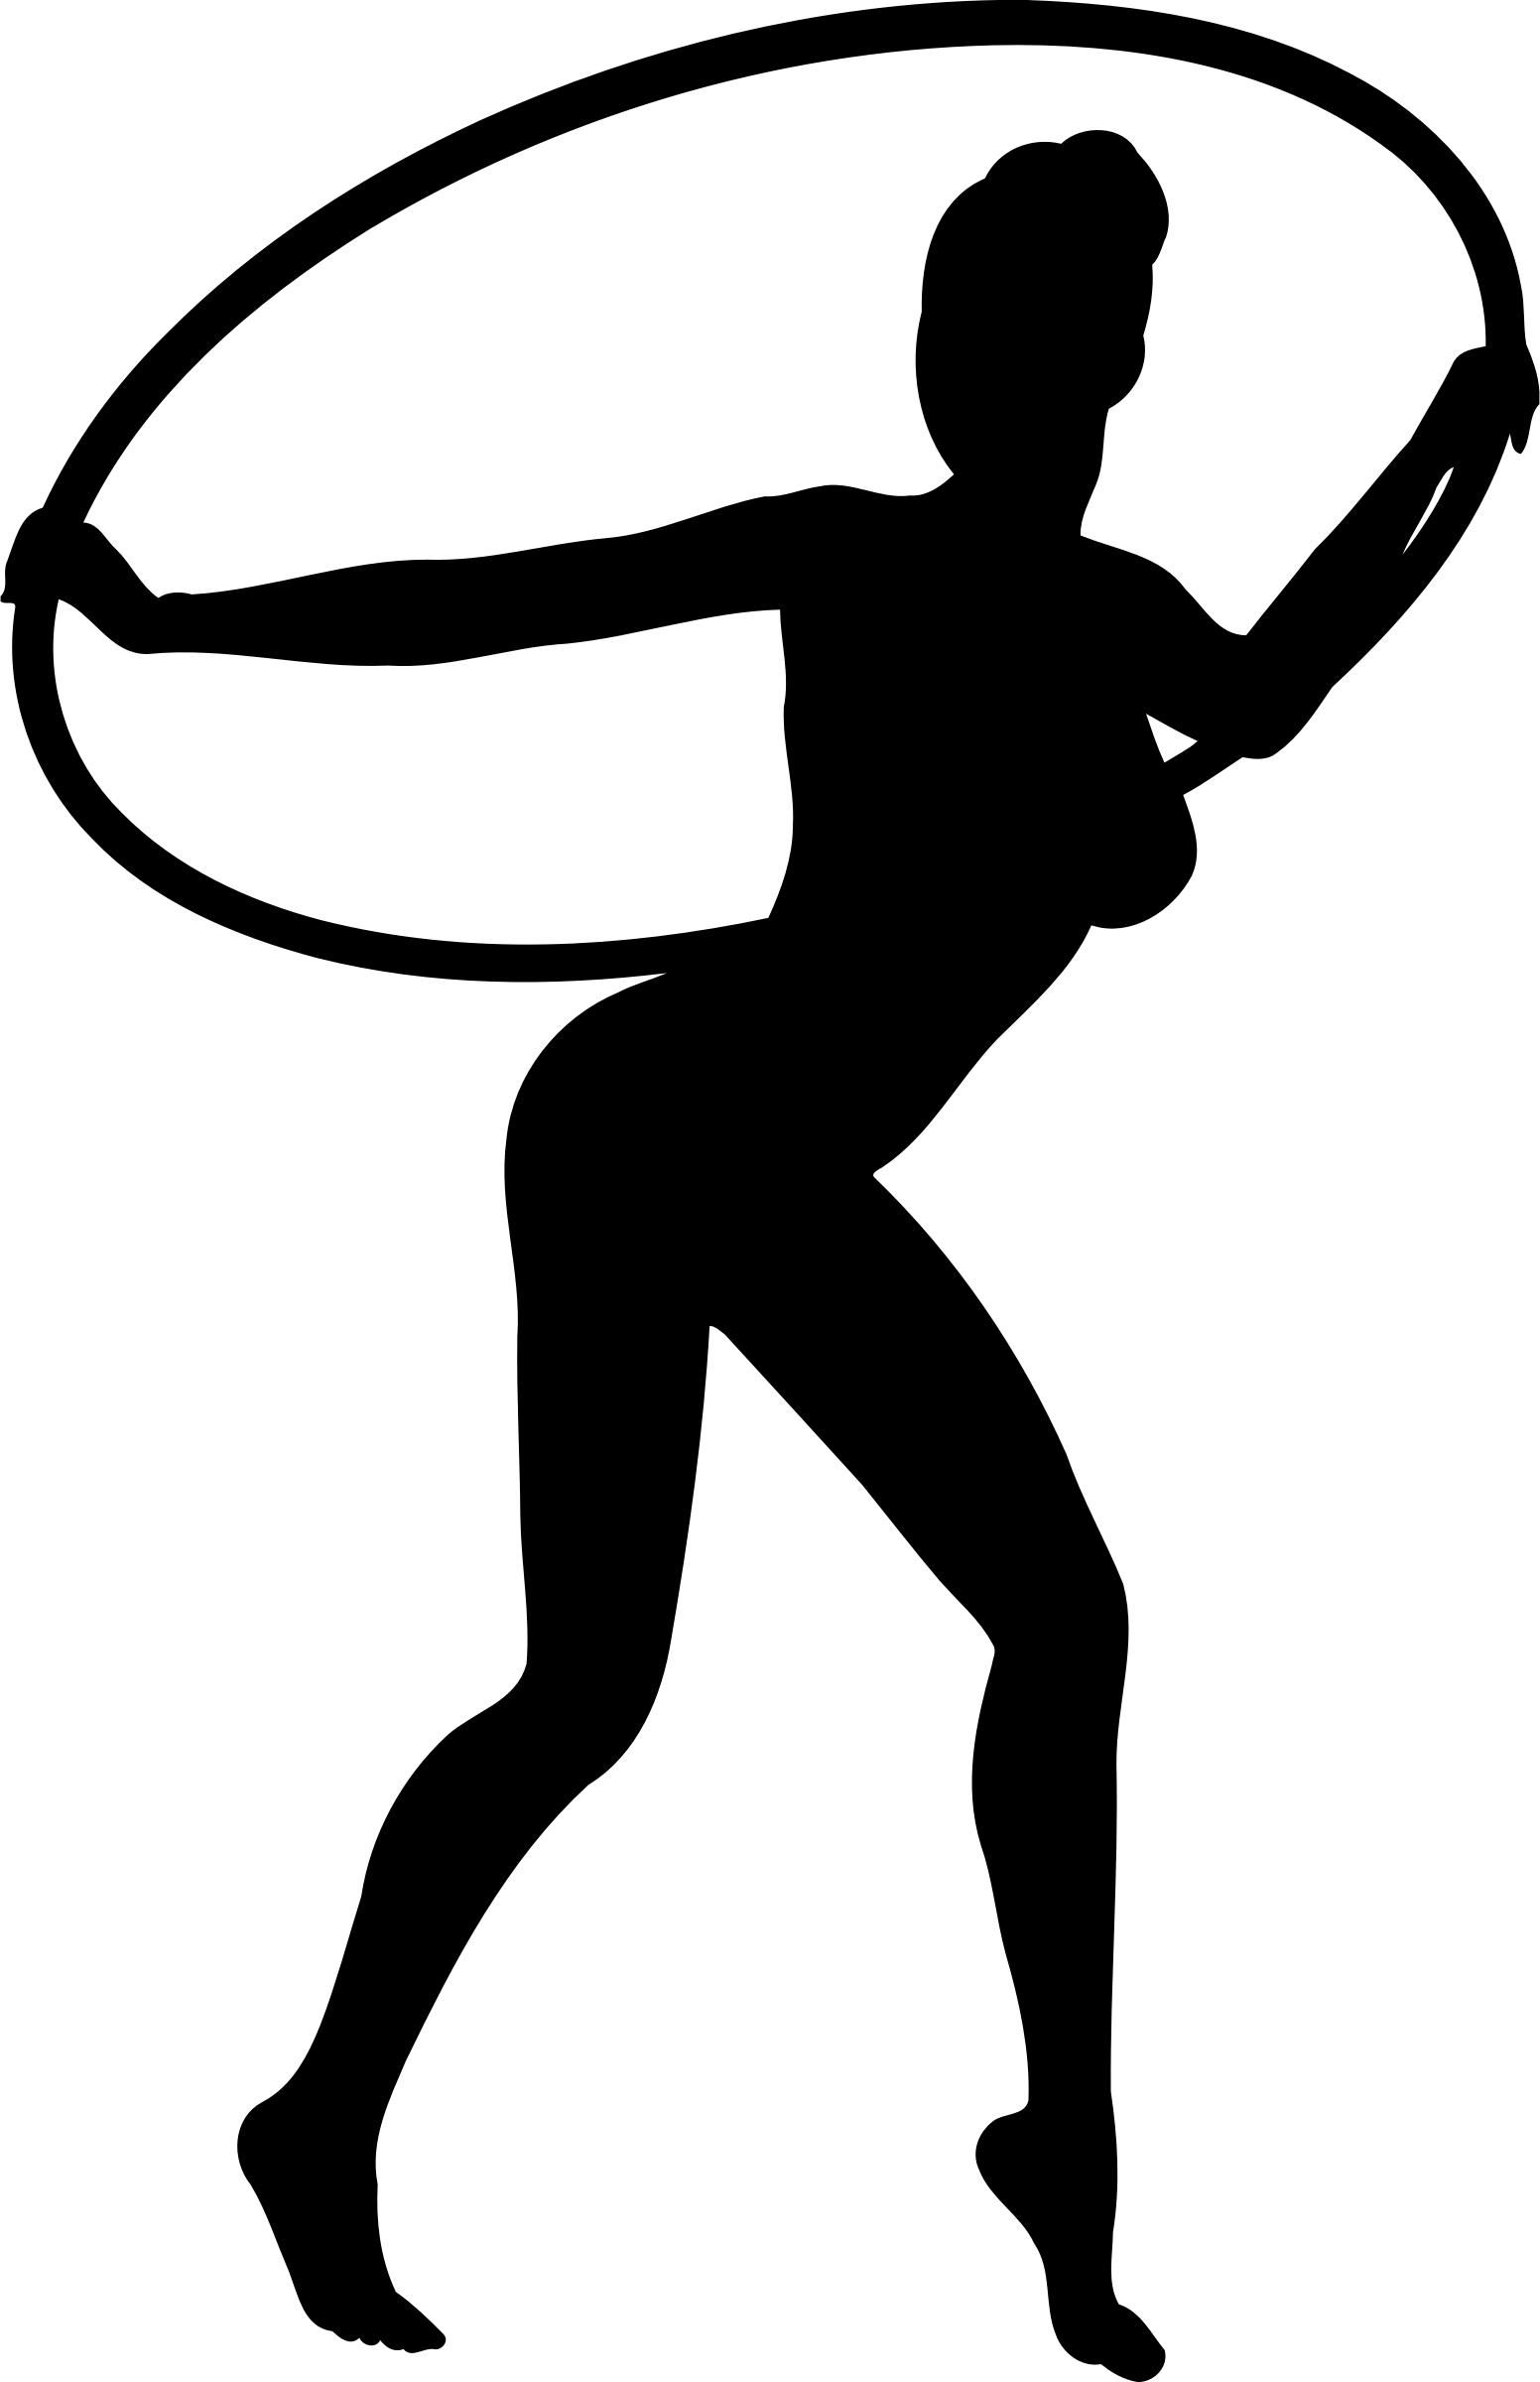 1552x2400 Girl Dancing With Hoop Silhouette Icons Png Silhouette Silhouette Images Human Silhouette